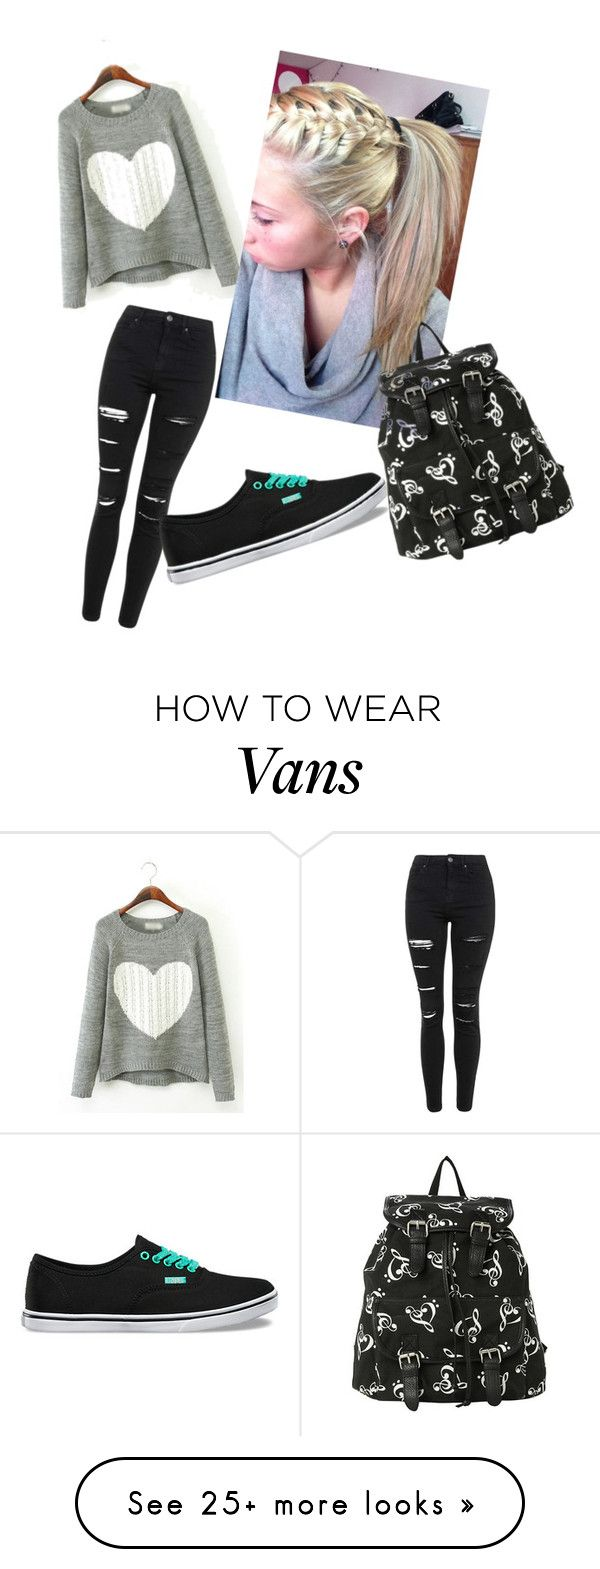 """back 2 school"" by yohannaapm on Polyvore featuring Topshop, Vans, women's clothing, women's fashion, women, female, woman, misses and juniors"